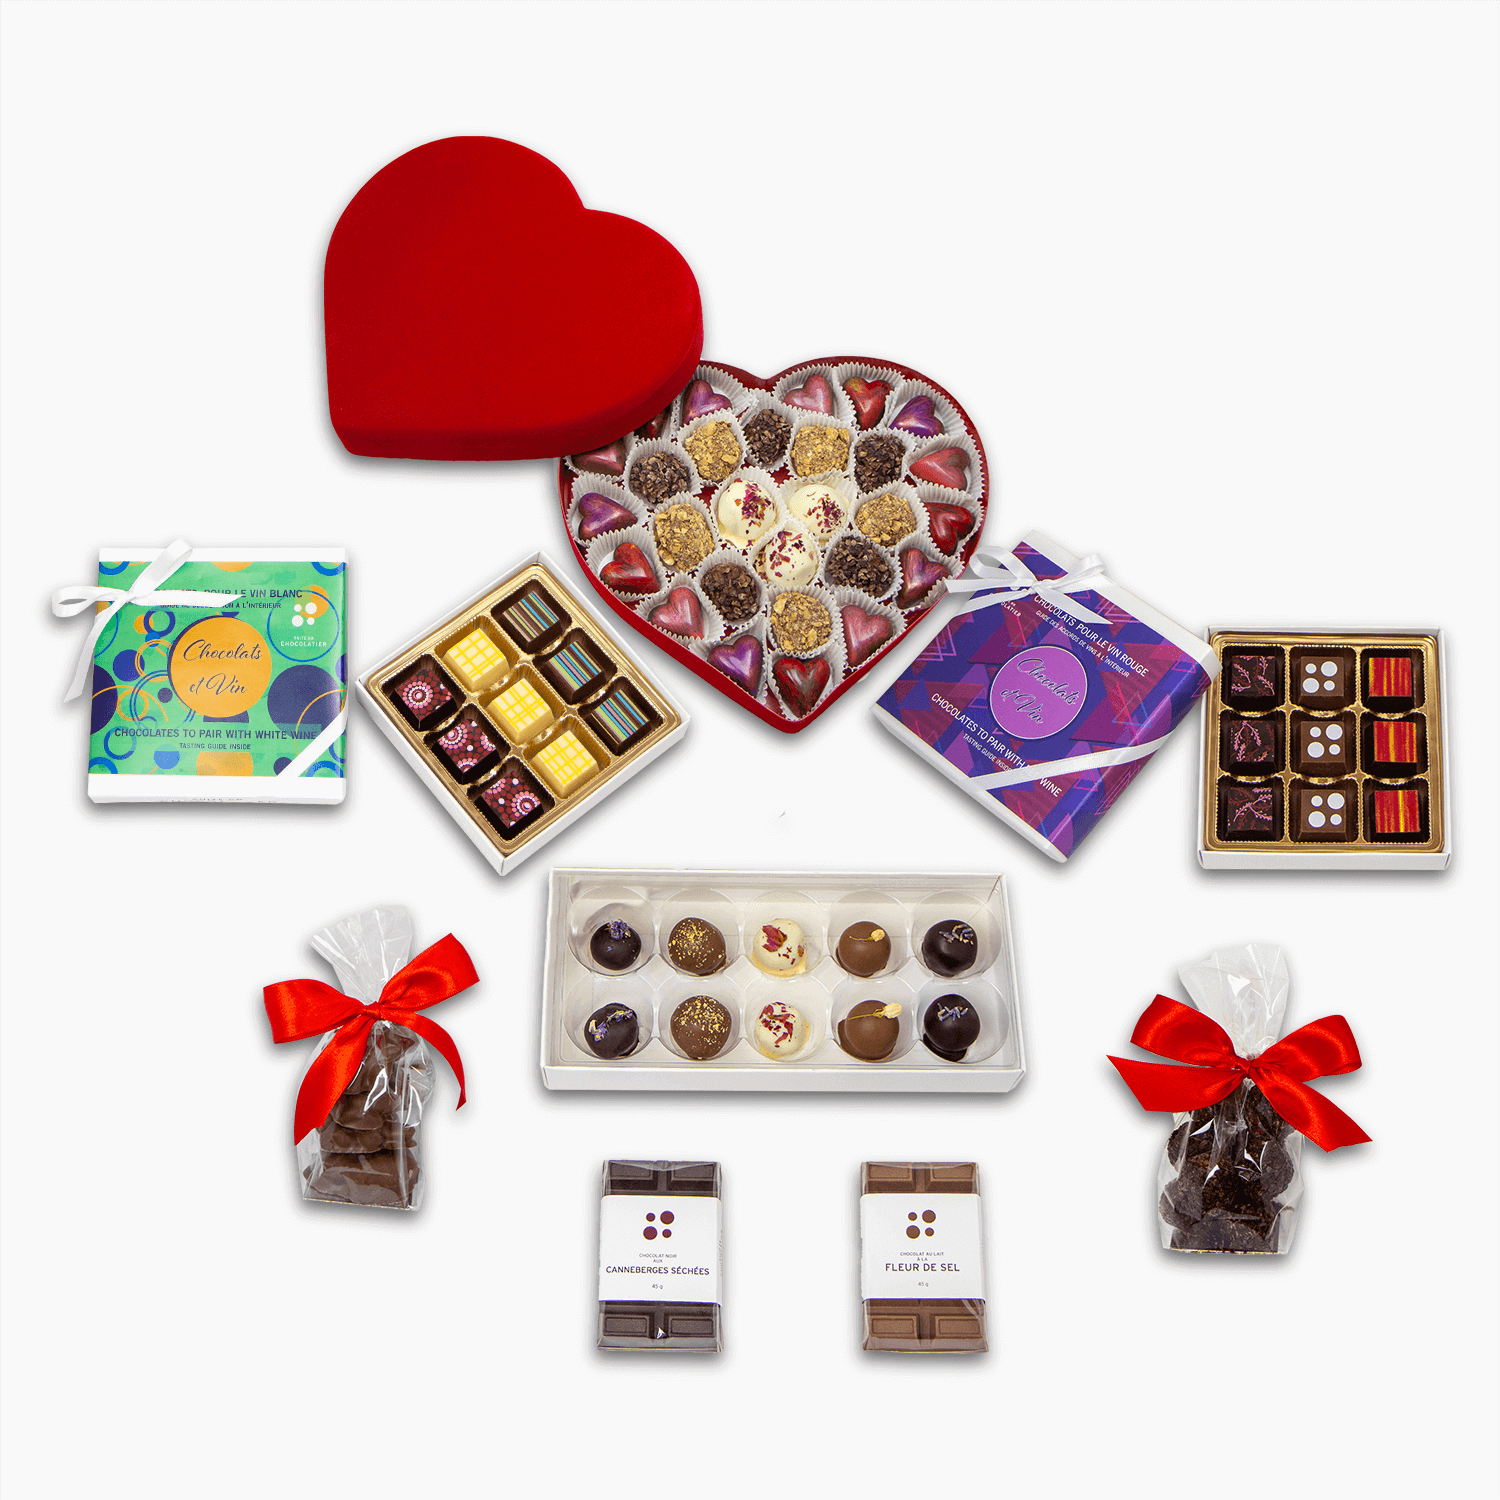 large Valentine's Day gift box contents